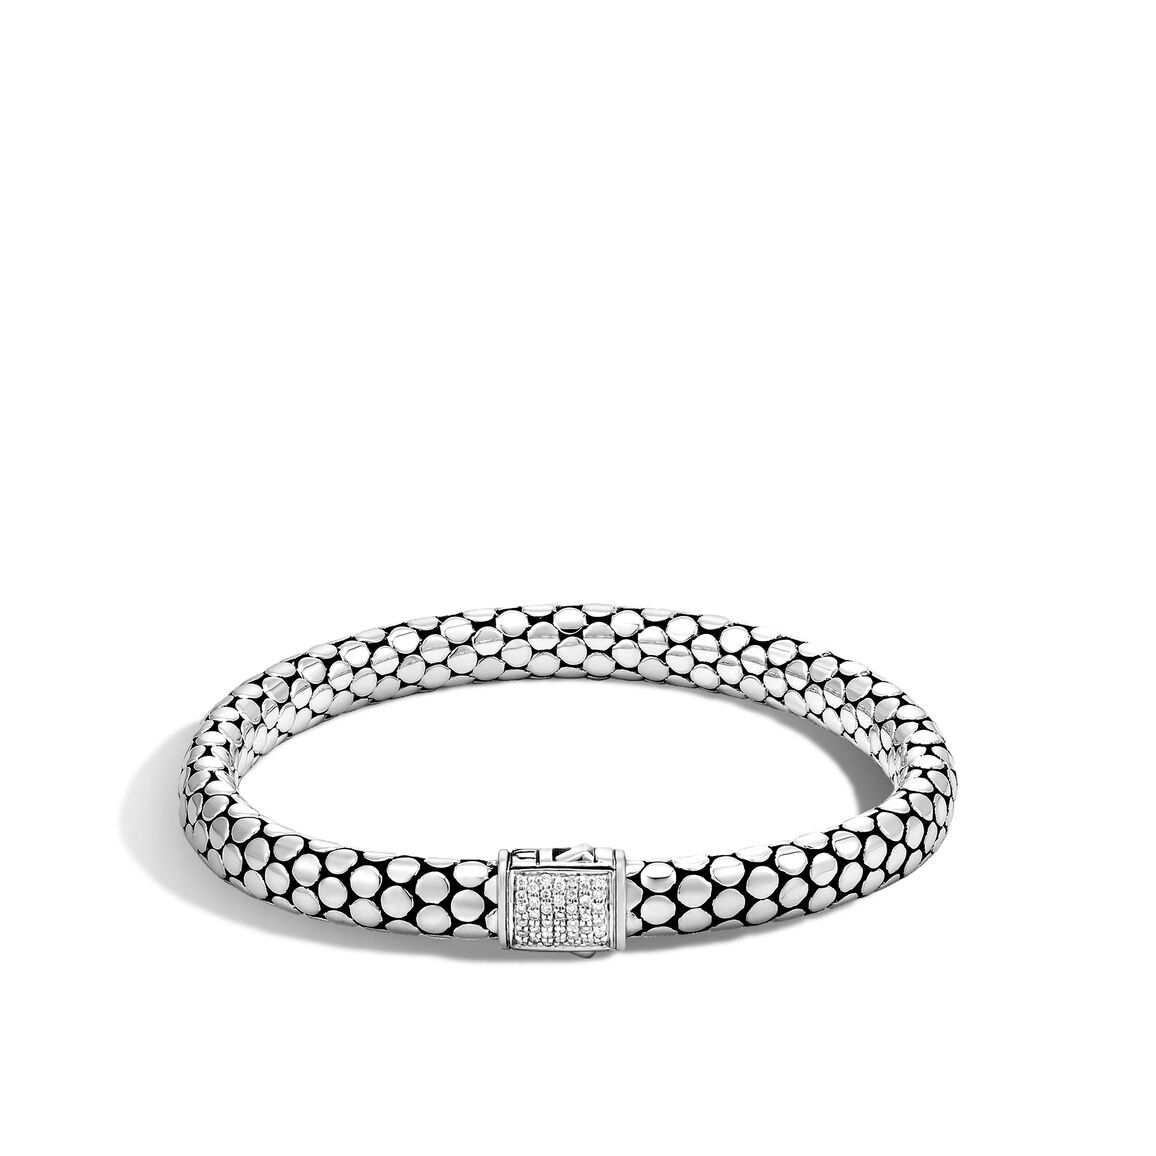 Dot 6.5MM Bracelet in Silver with Diamonds